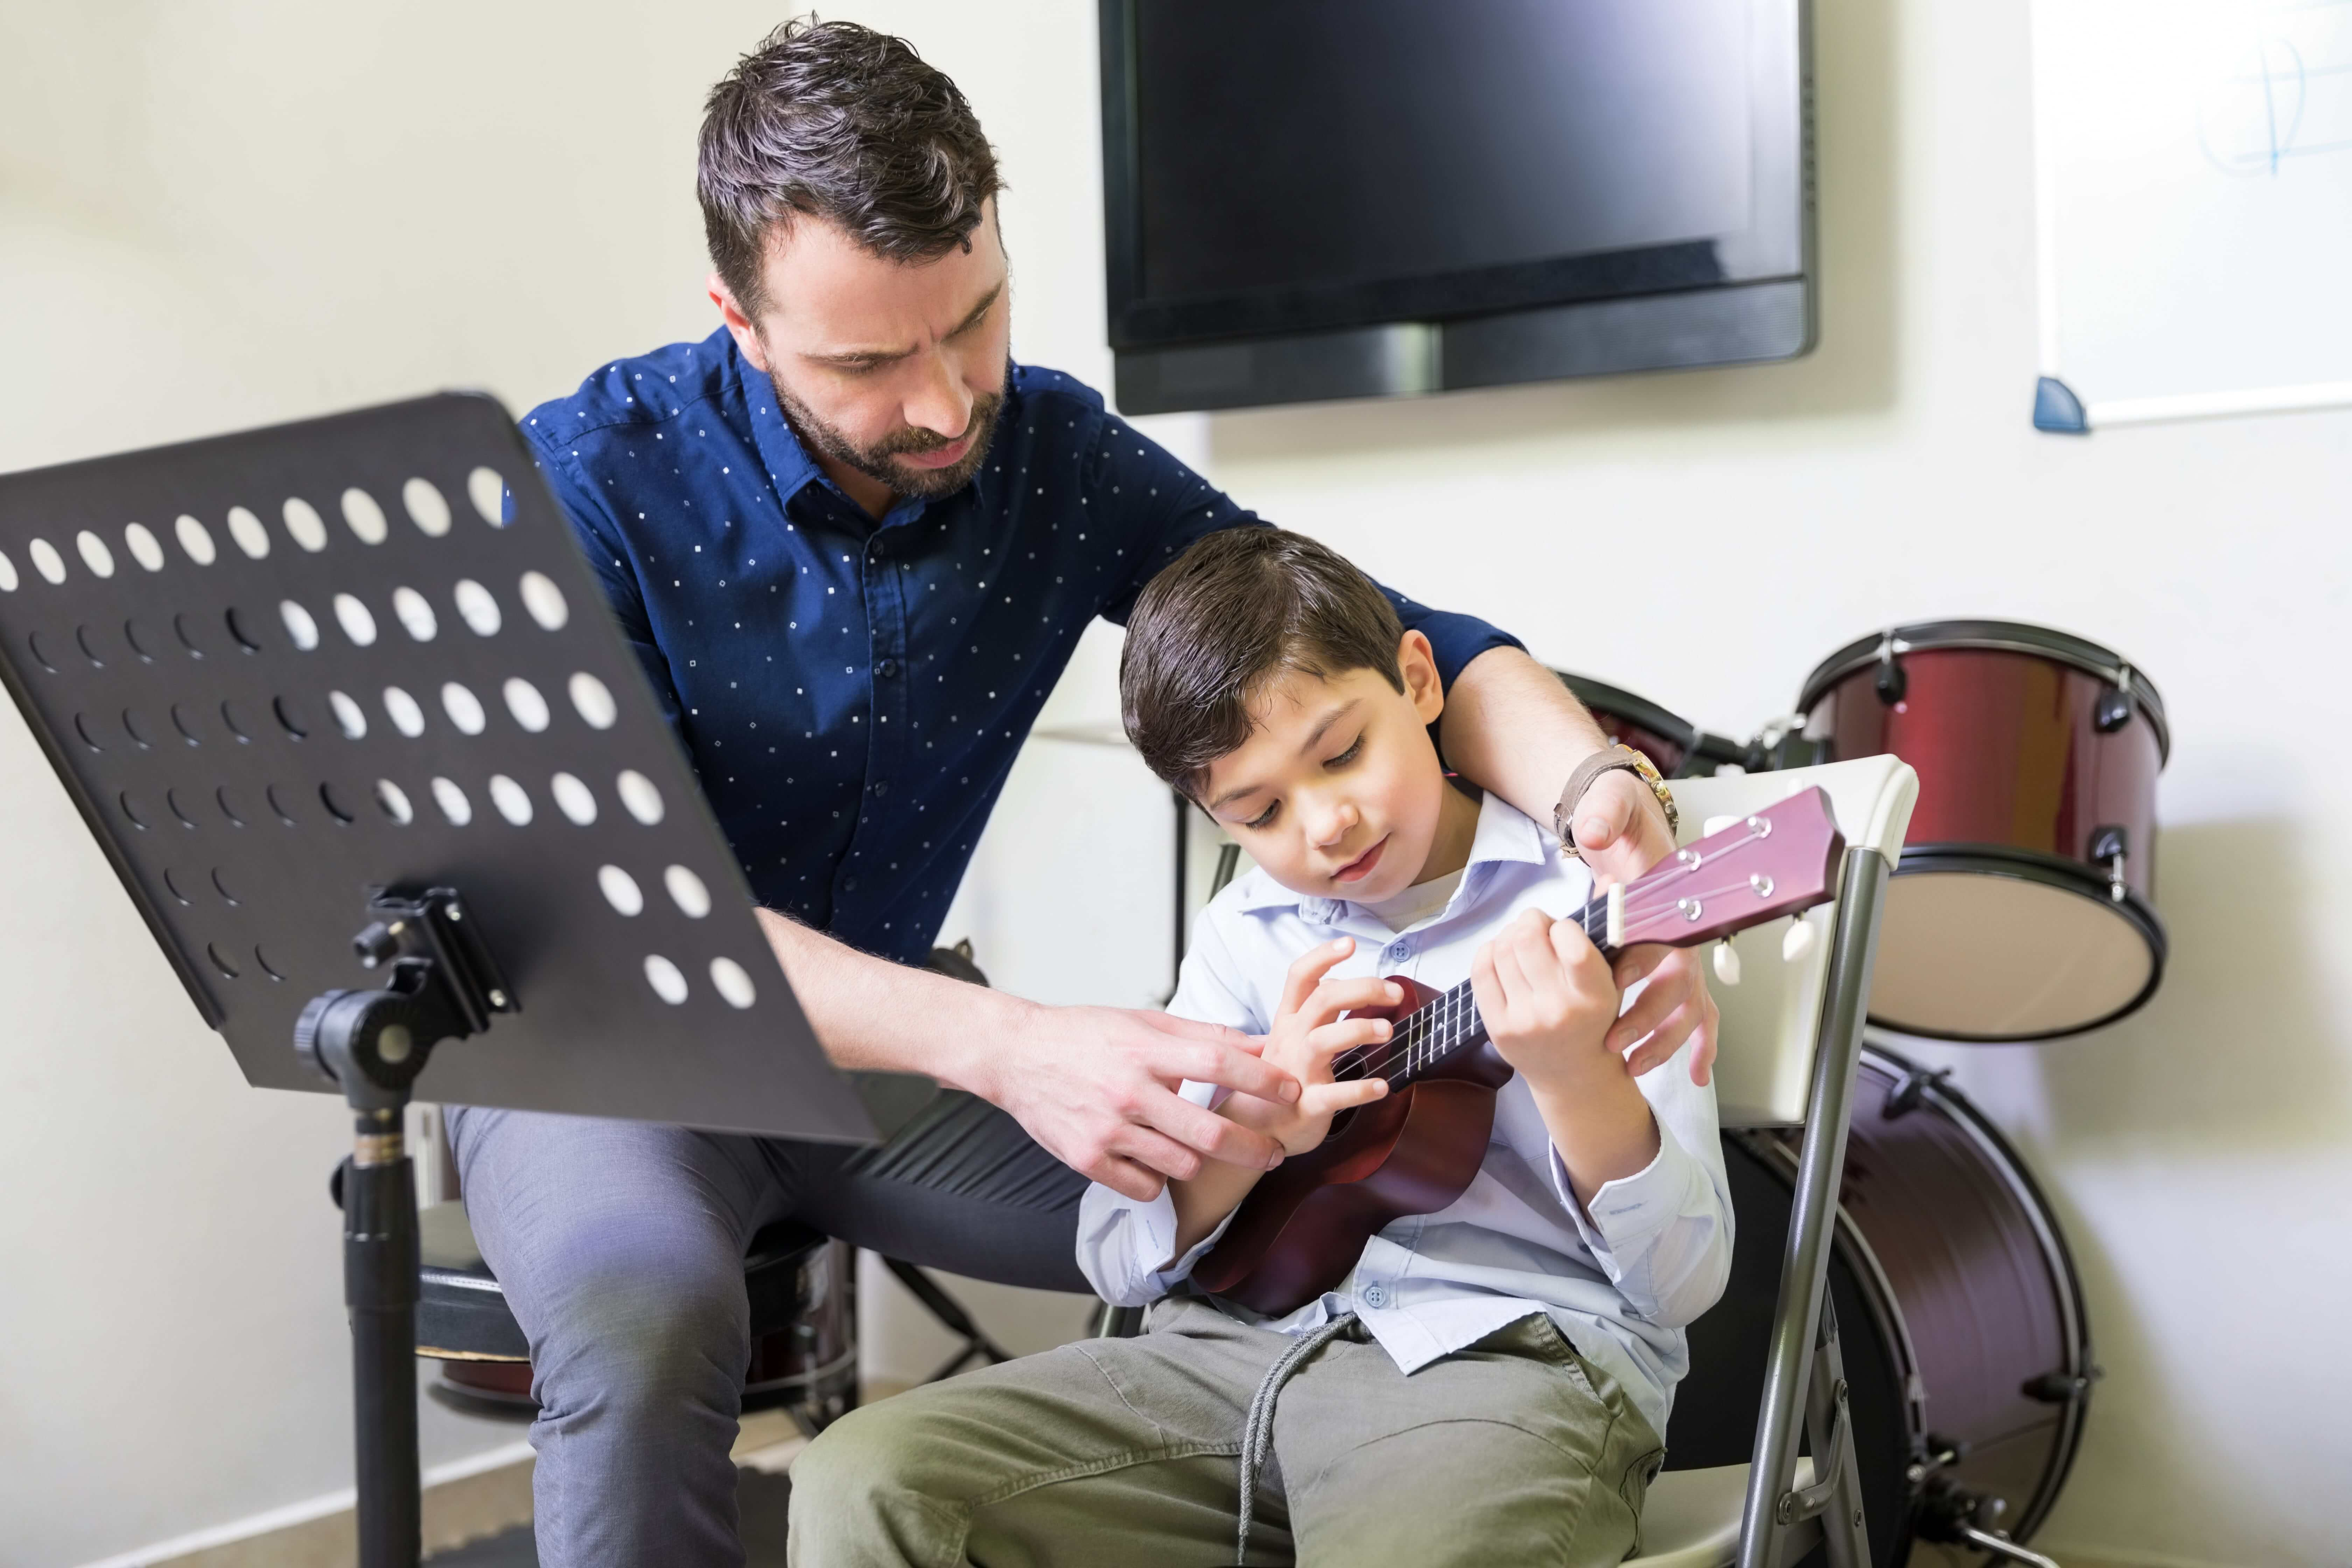 Instructor teaching his student on how to play Ukelele